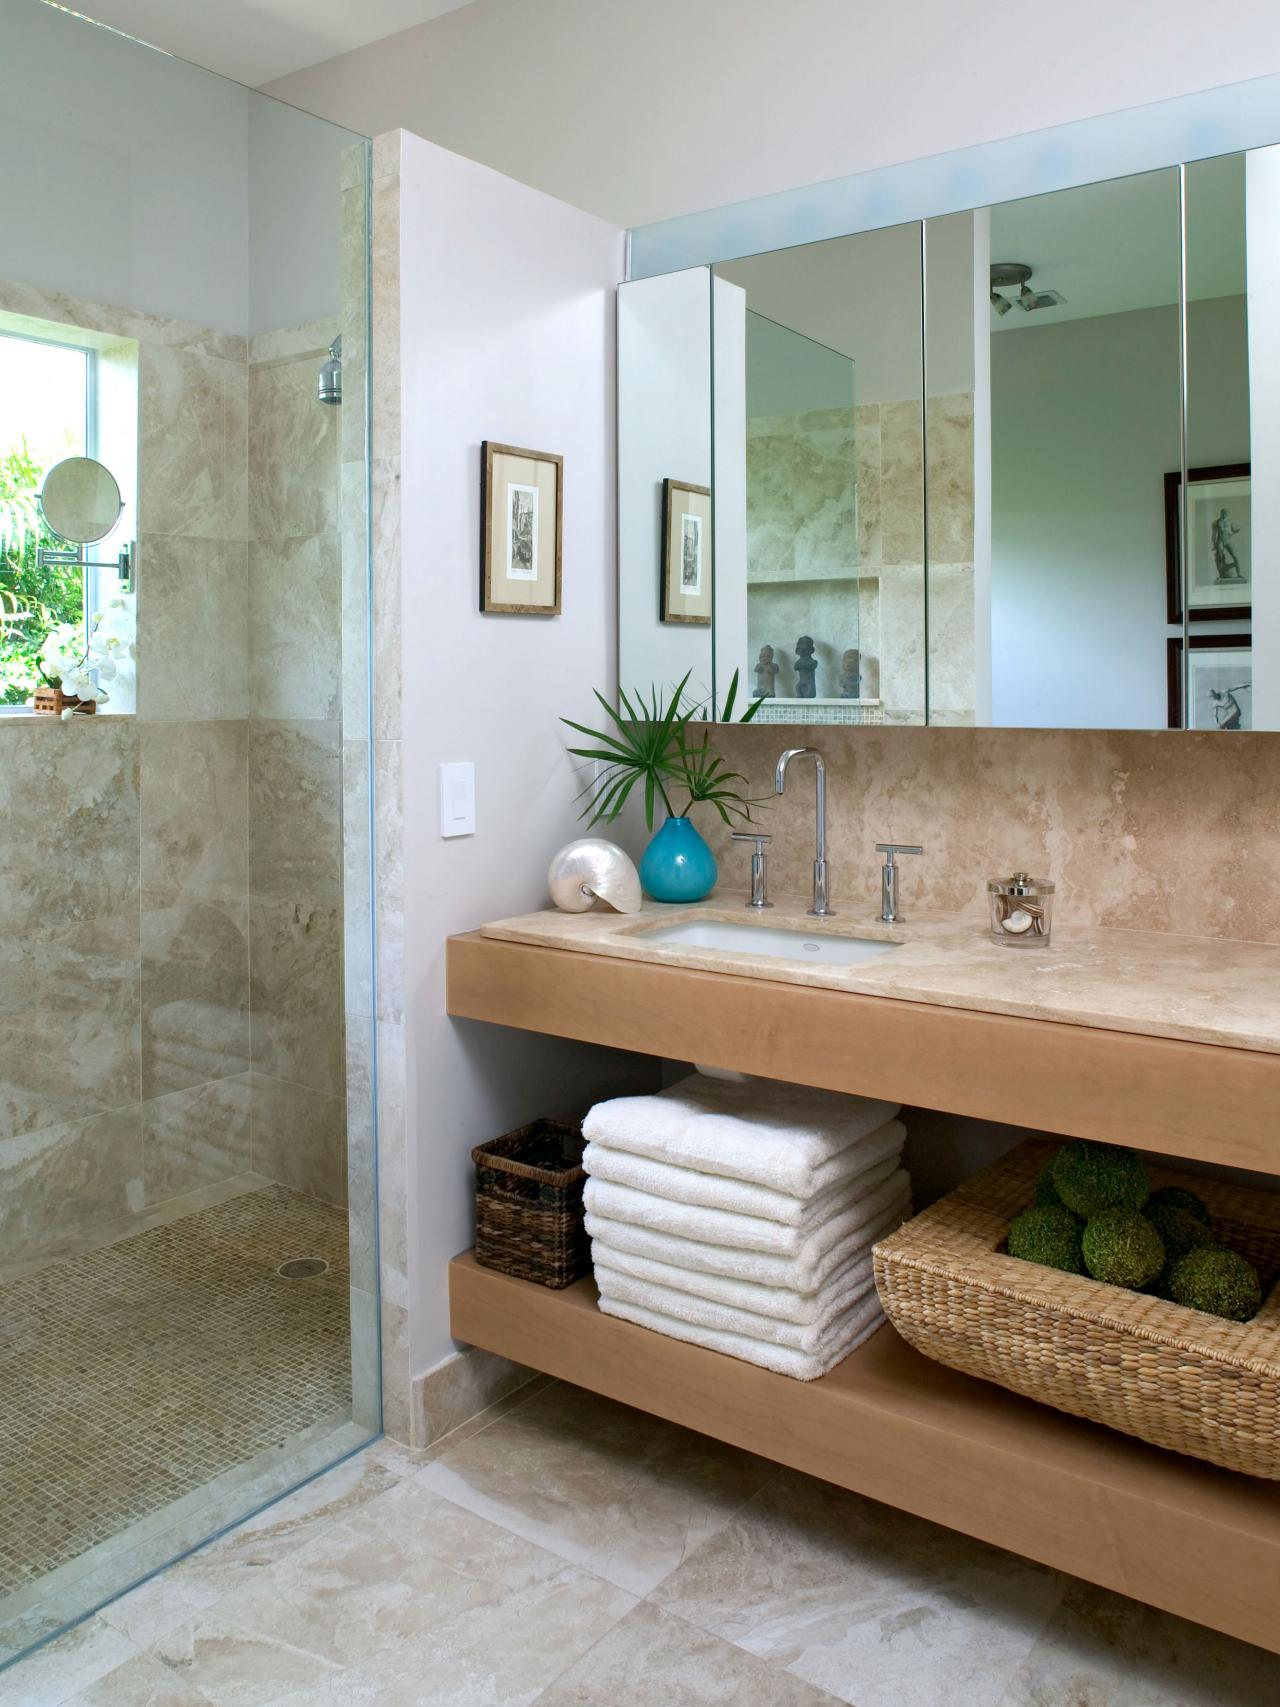 Coastal bathroom ideas bathroom ideas designs hgtv for Bathroom decor inspiration